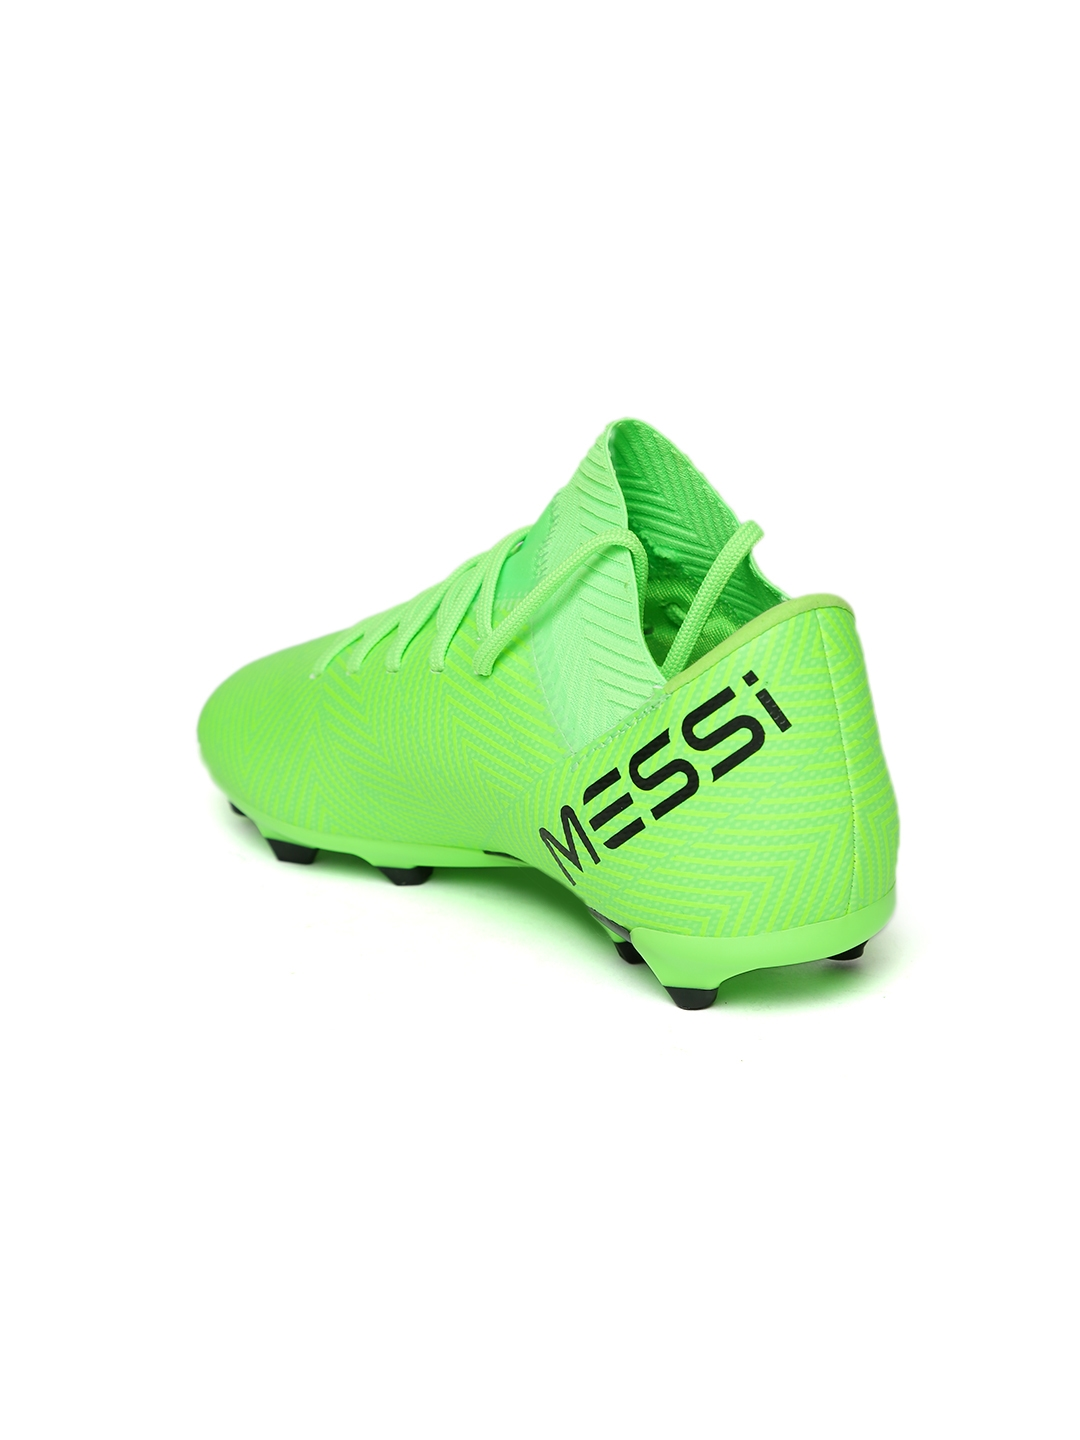 online store 9eced d0a39 ADIDAS Boys Green Nemeziz Messi 18.3 Firm Ground Football Shoes